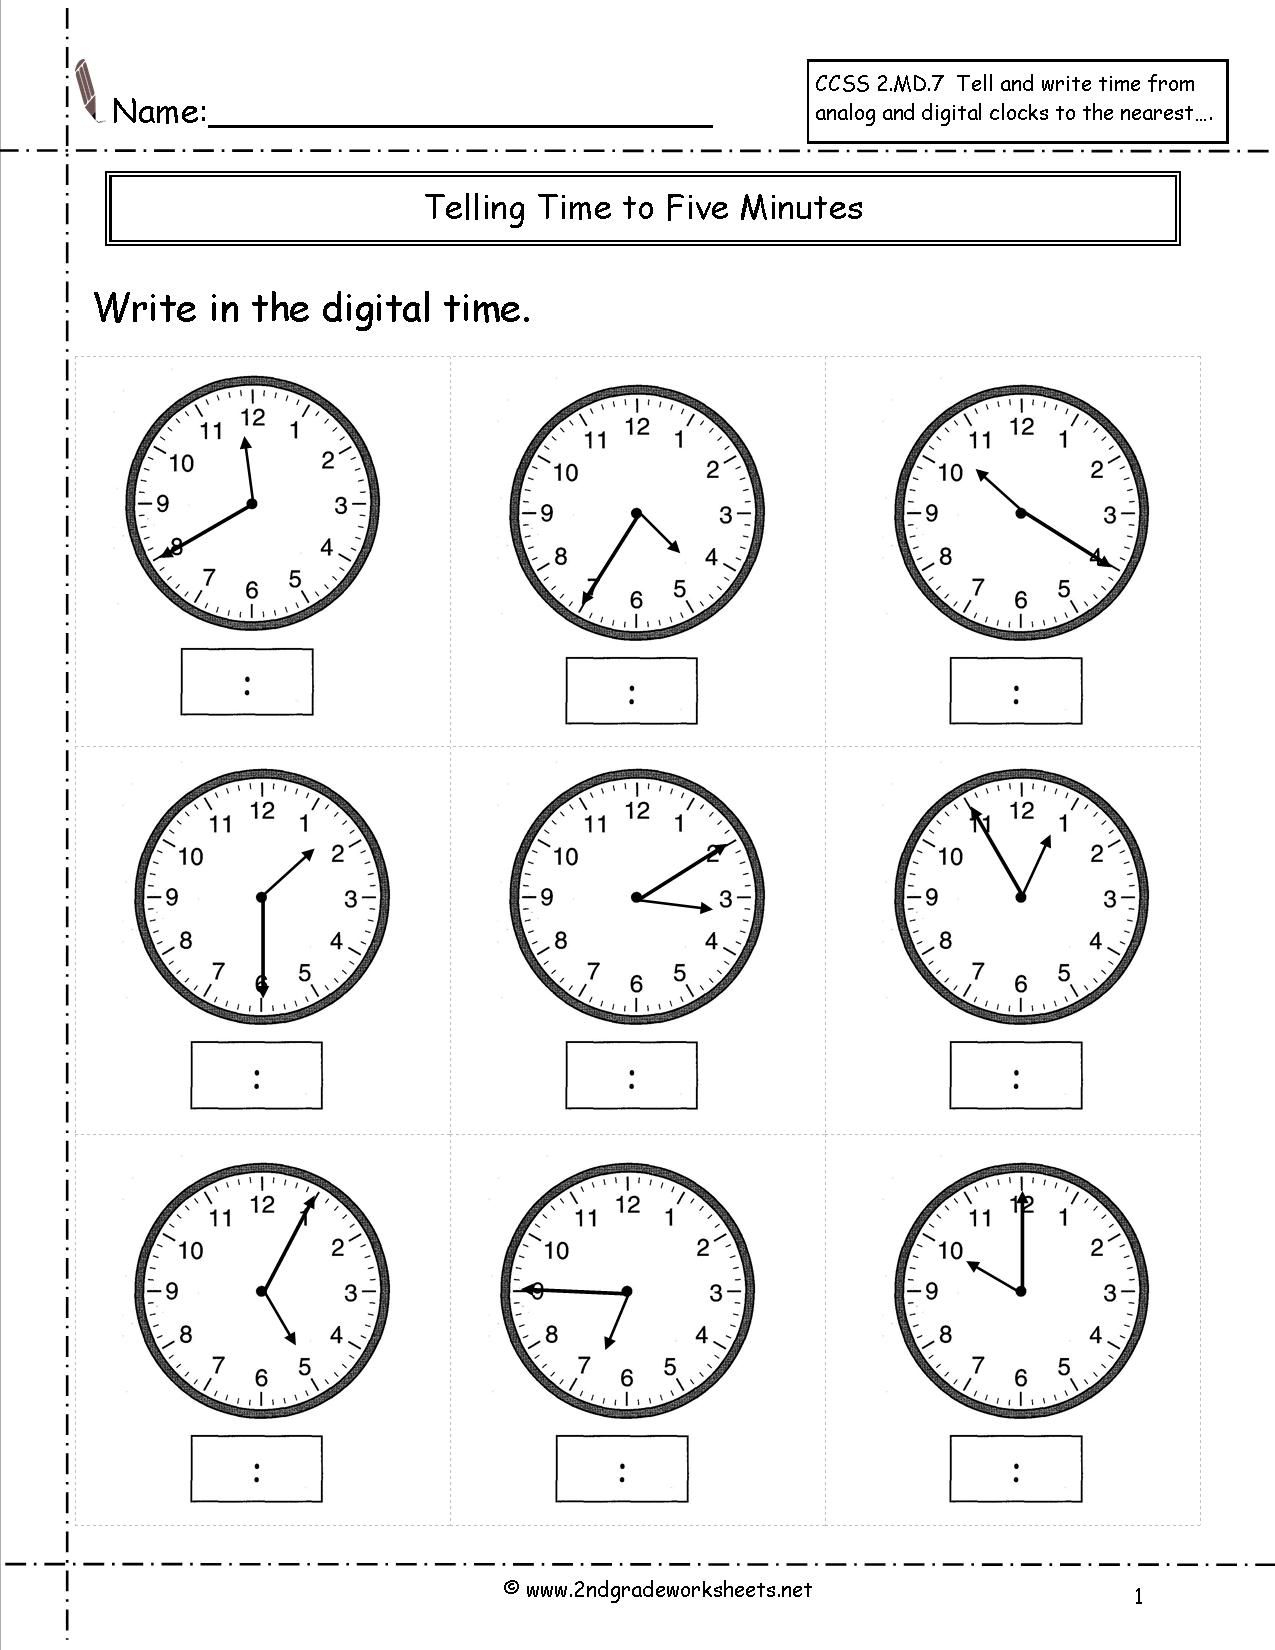 Telling Time To Nearest Five Minutes Worksheet